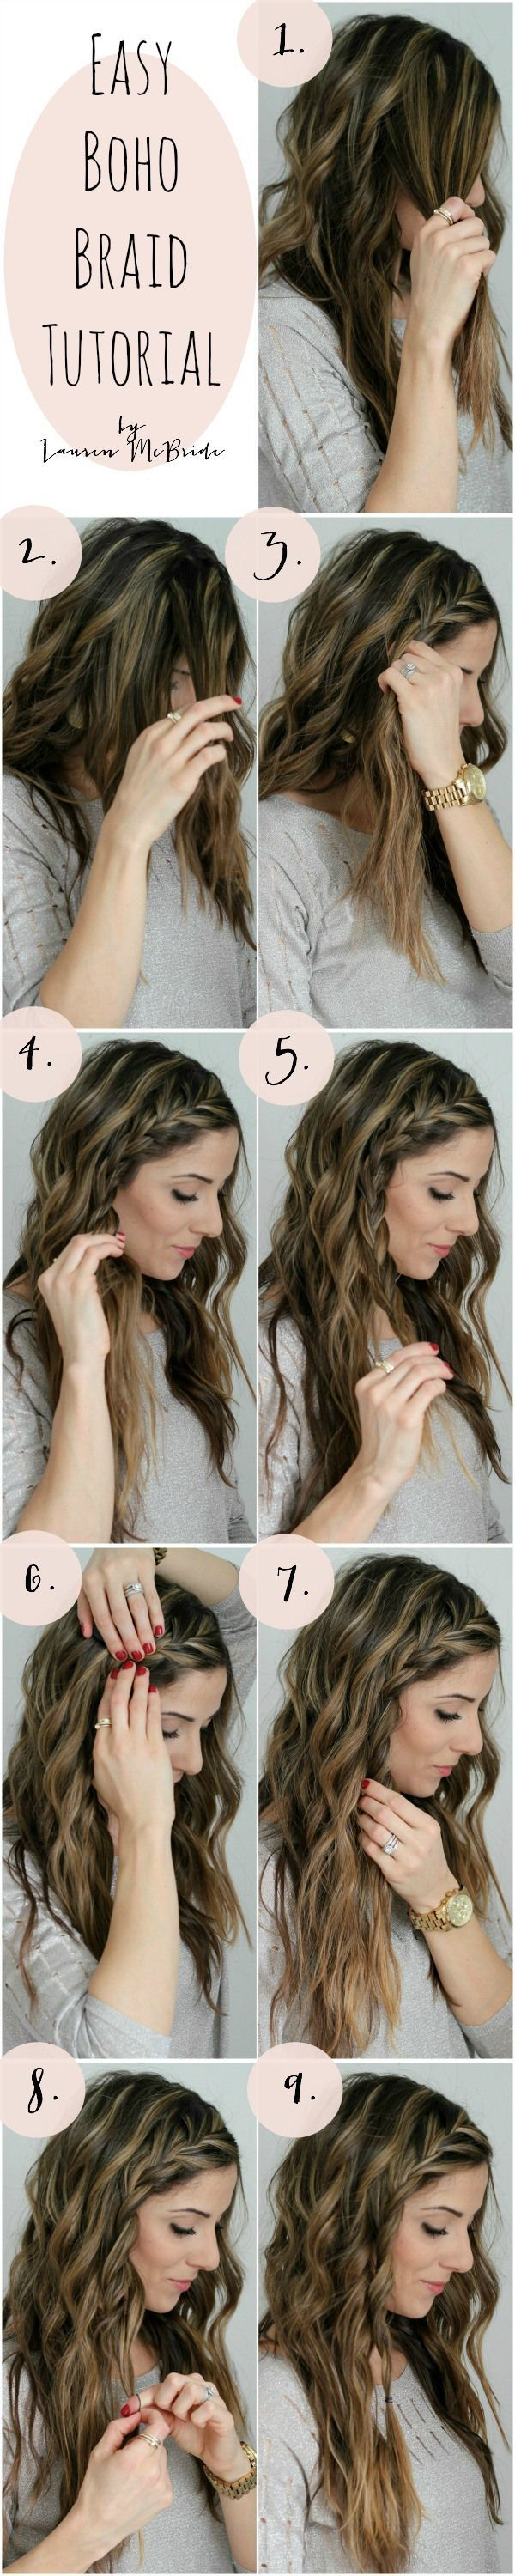 braided ways to style your long hair long curls plays and winter